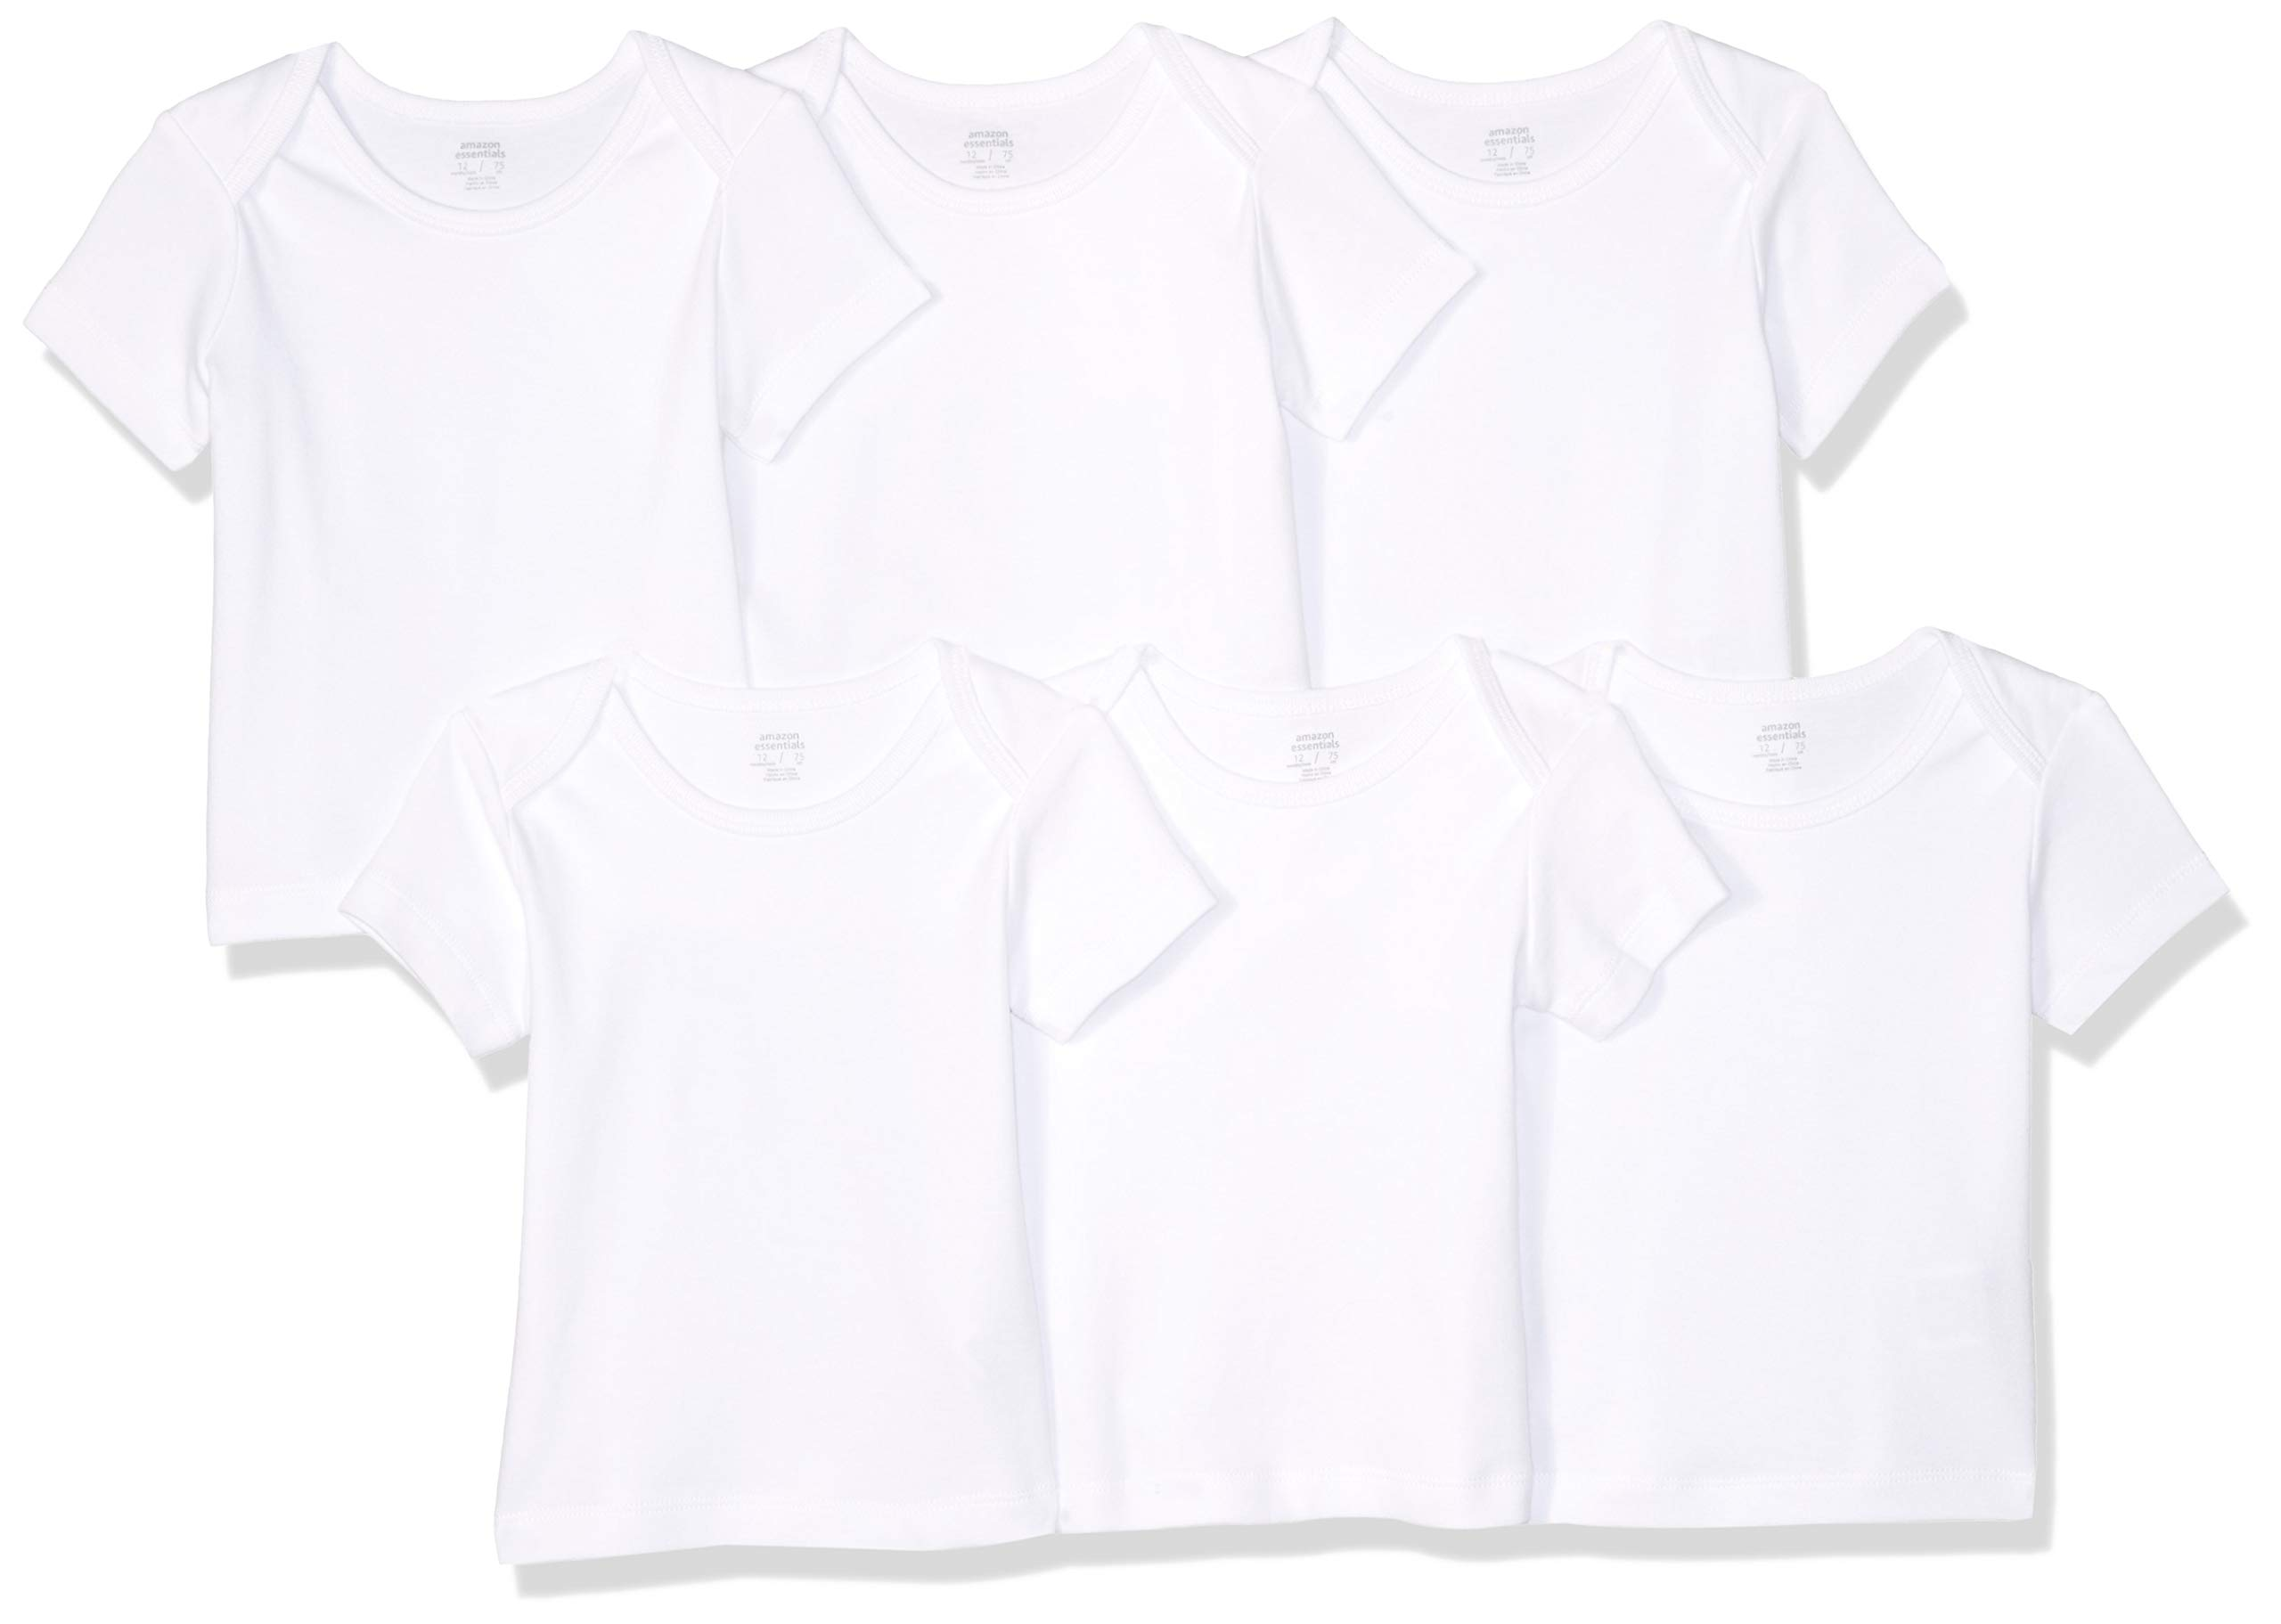 Amazon Essentials Baby 6-Pack Lap-Shoulder Tee, Solid White, 24M by Amazon Essentials